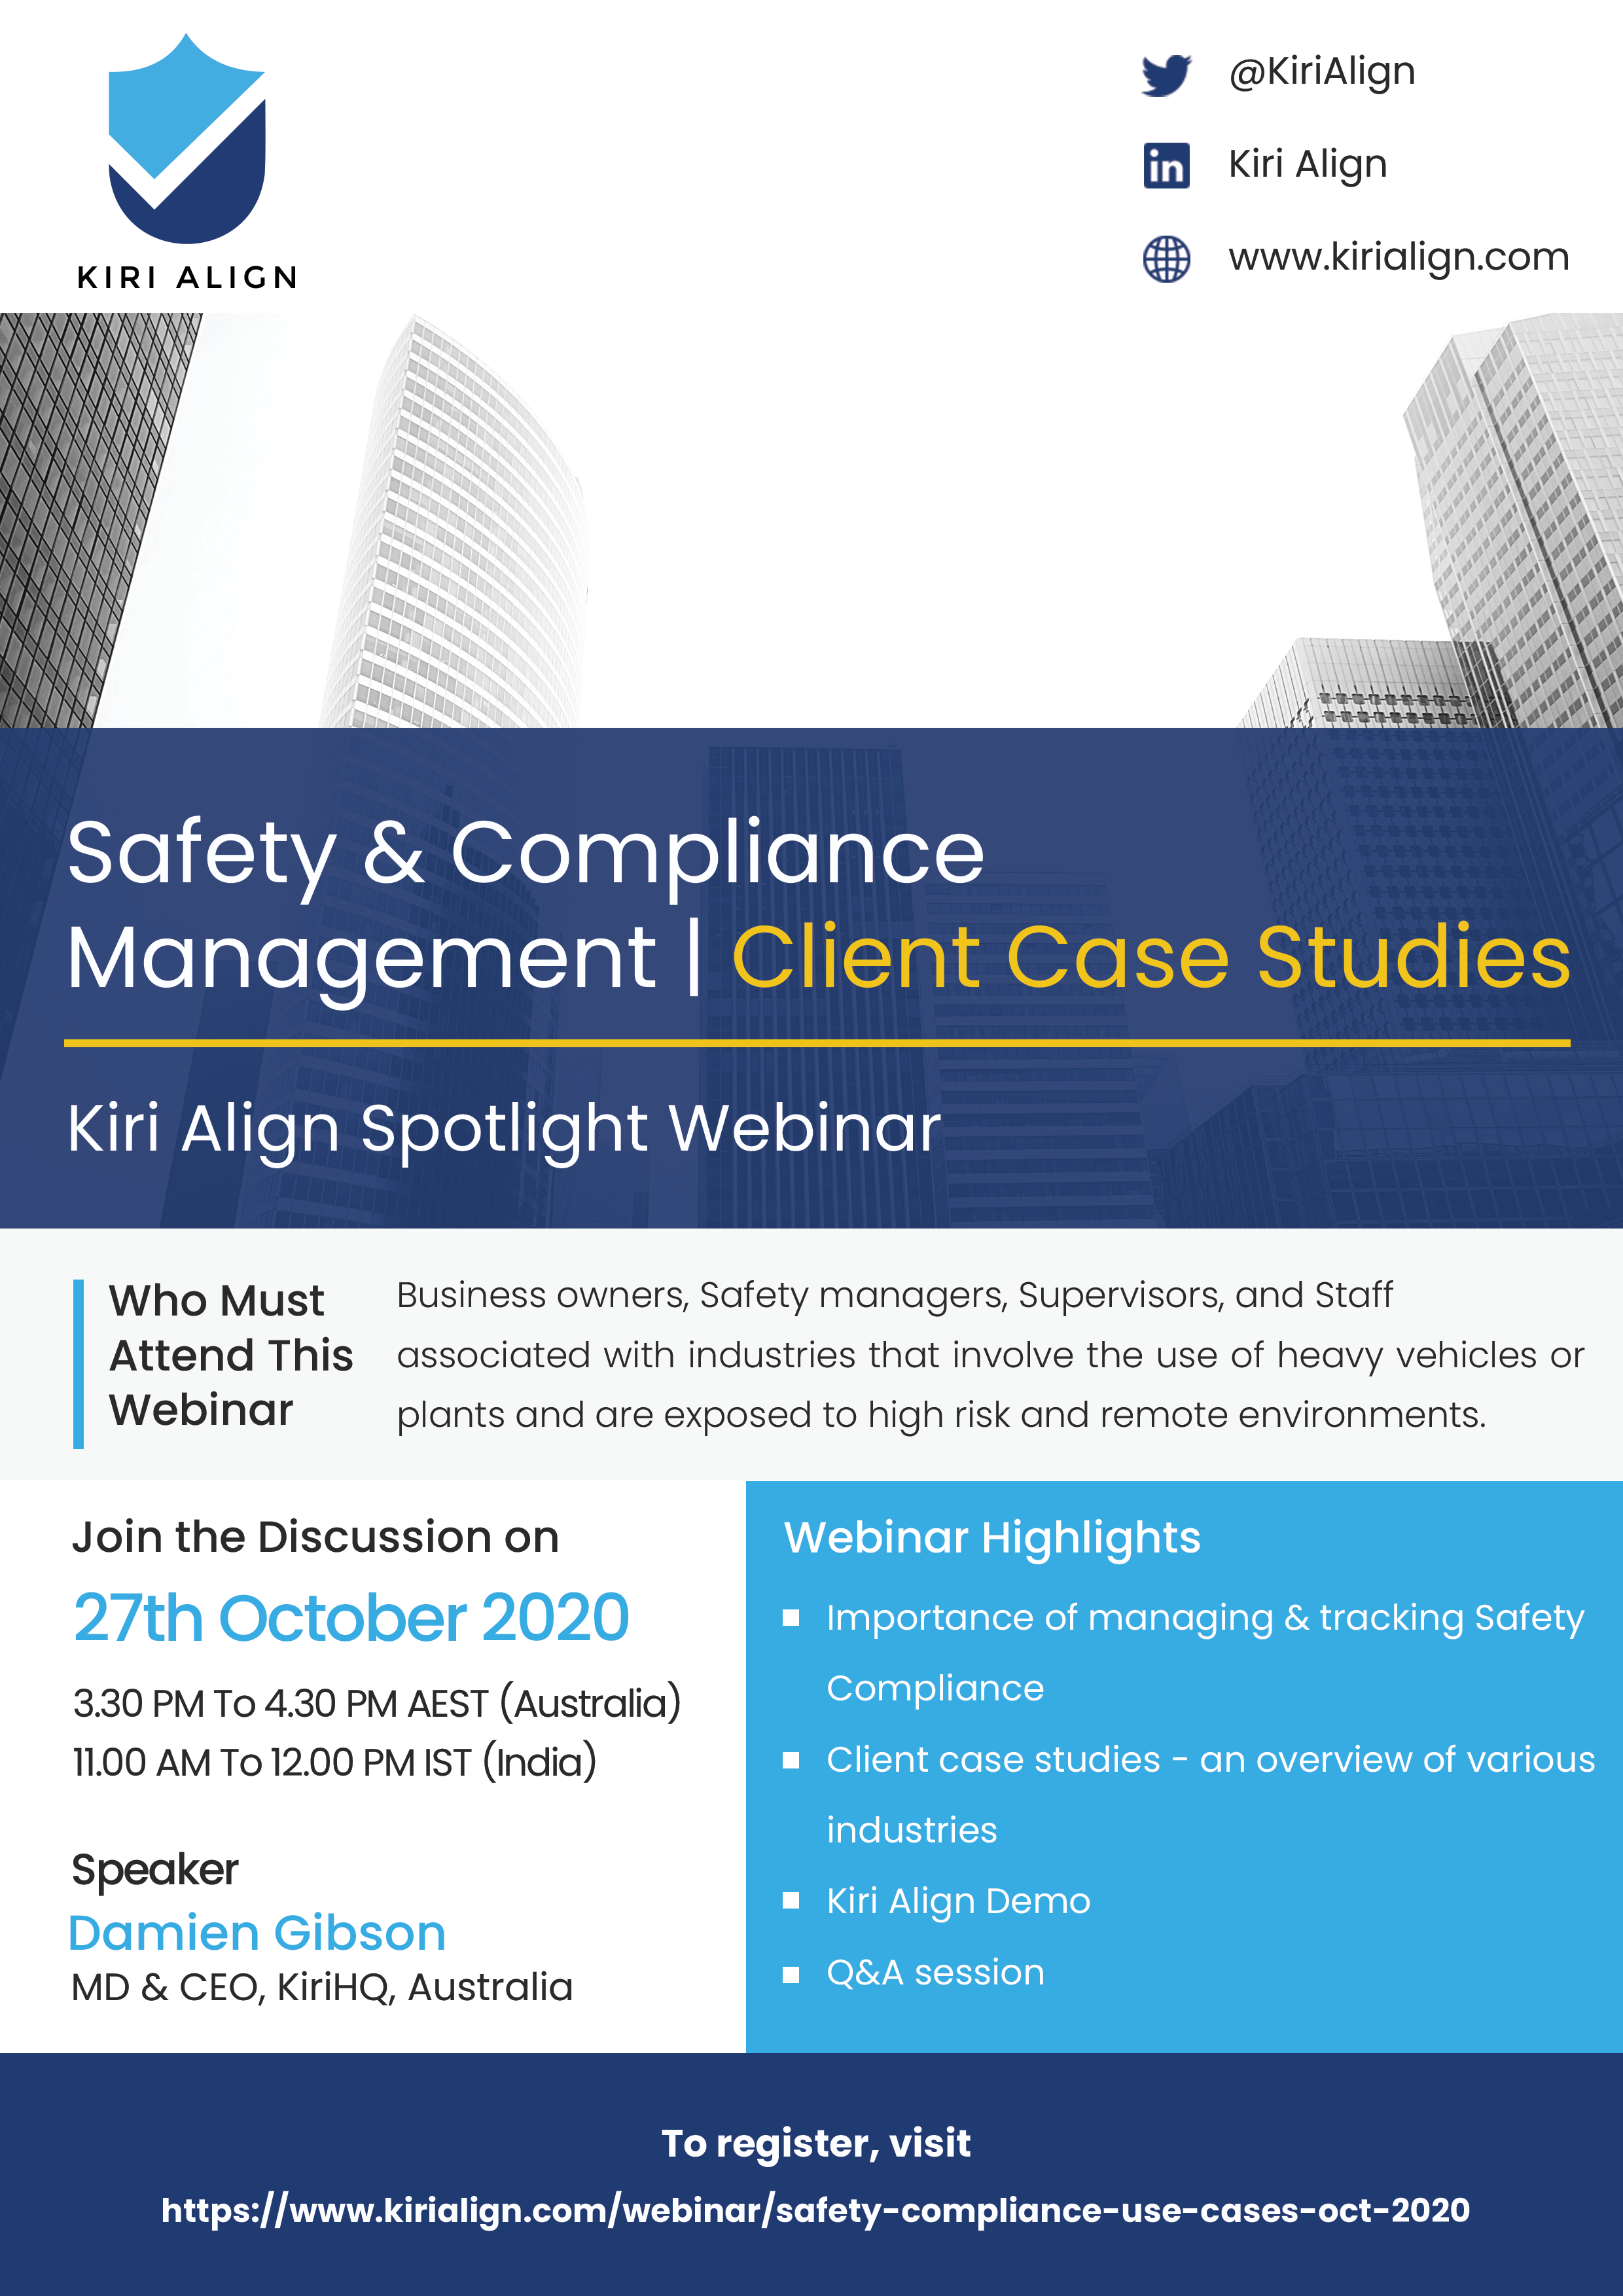 Safety and Compliance Management | Case Studies